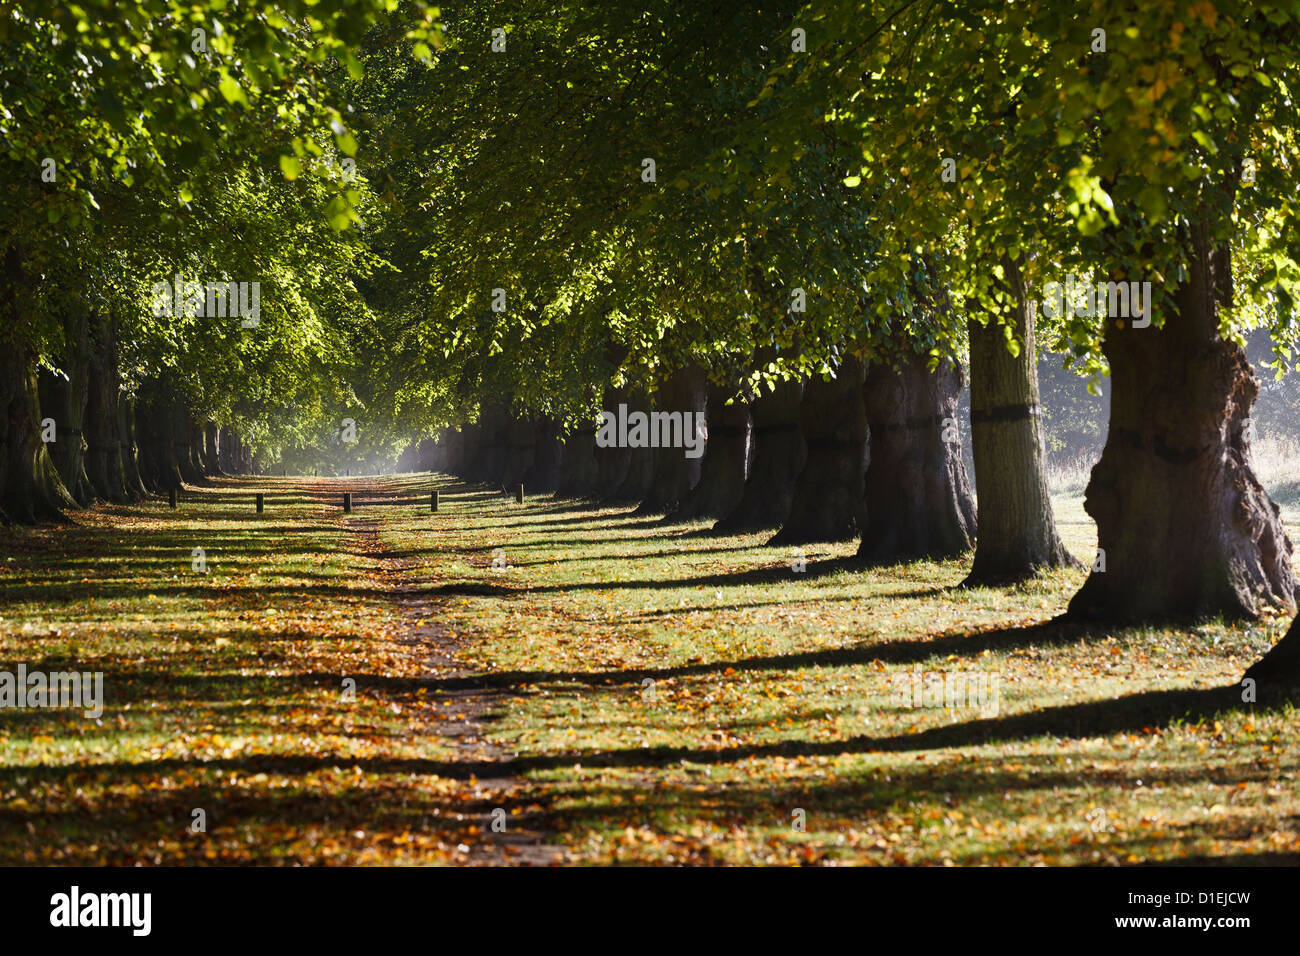 The Lime Tree Avenue, Clumber Park, Nottinghamshire - Stock Image